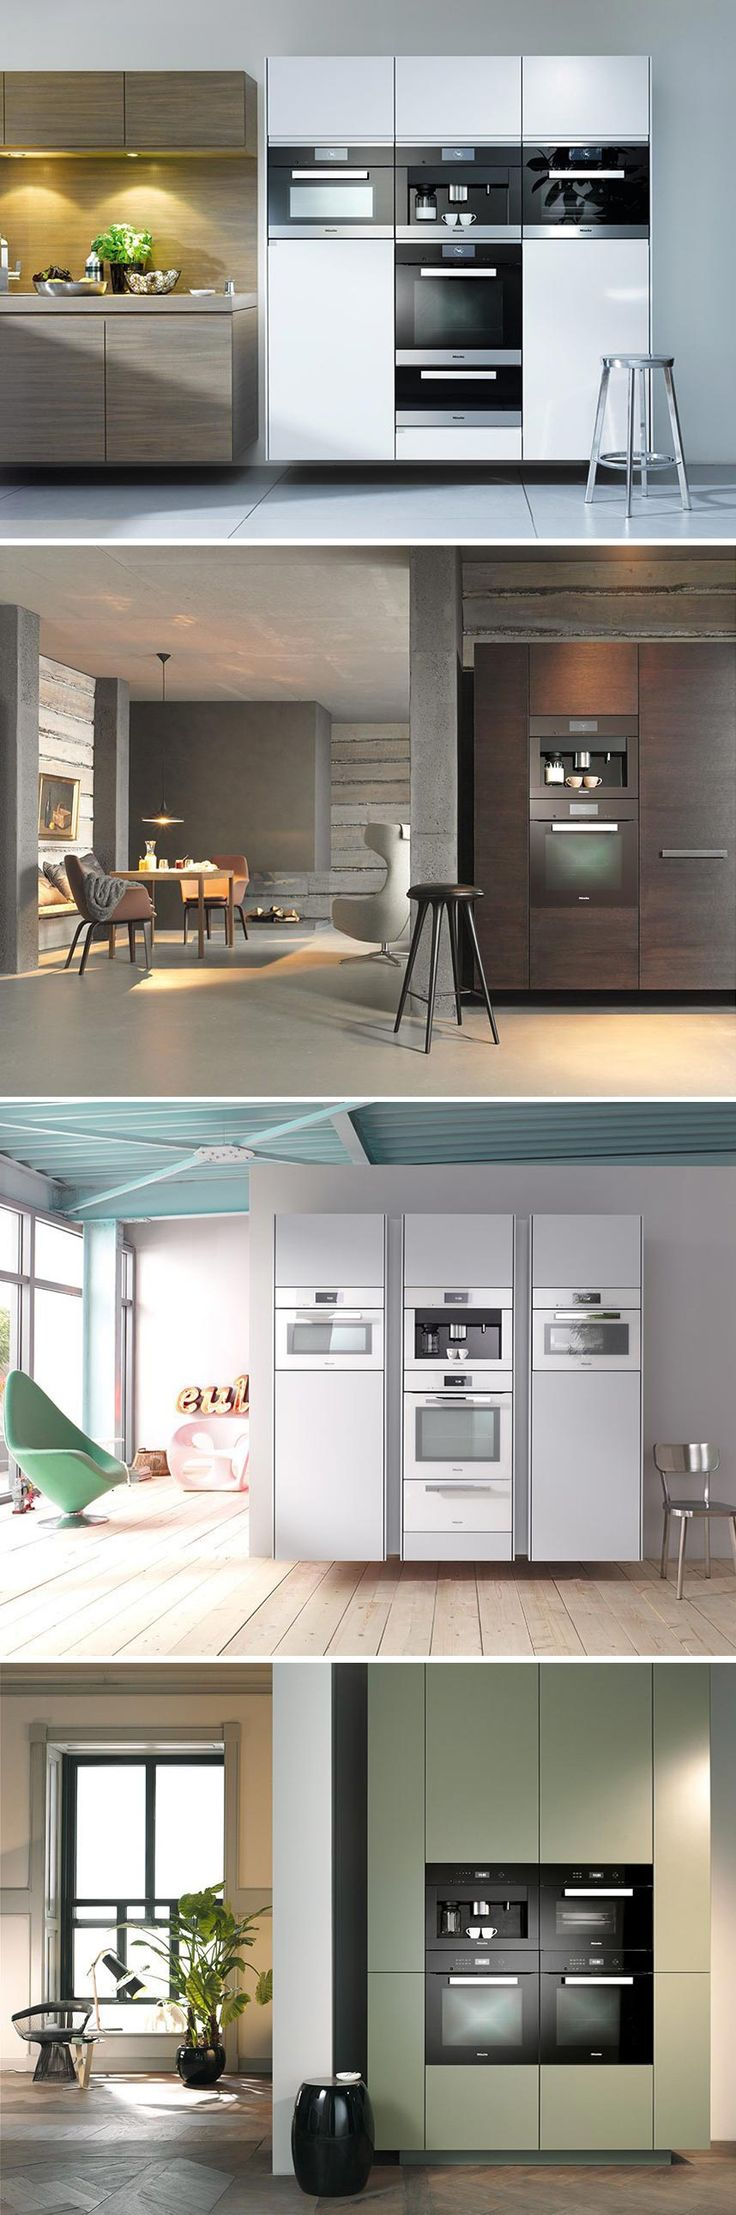 53 Best Miele Kitchen Images On Pinterest